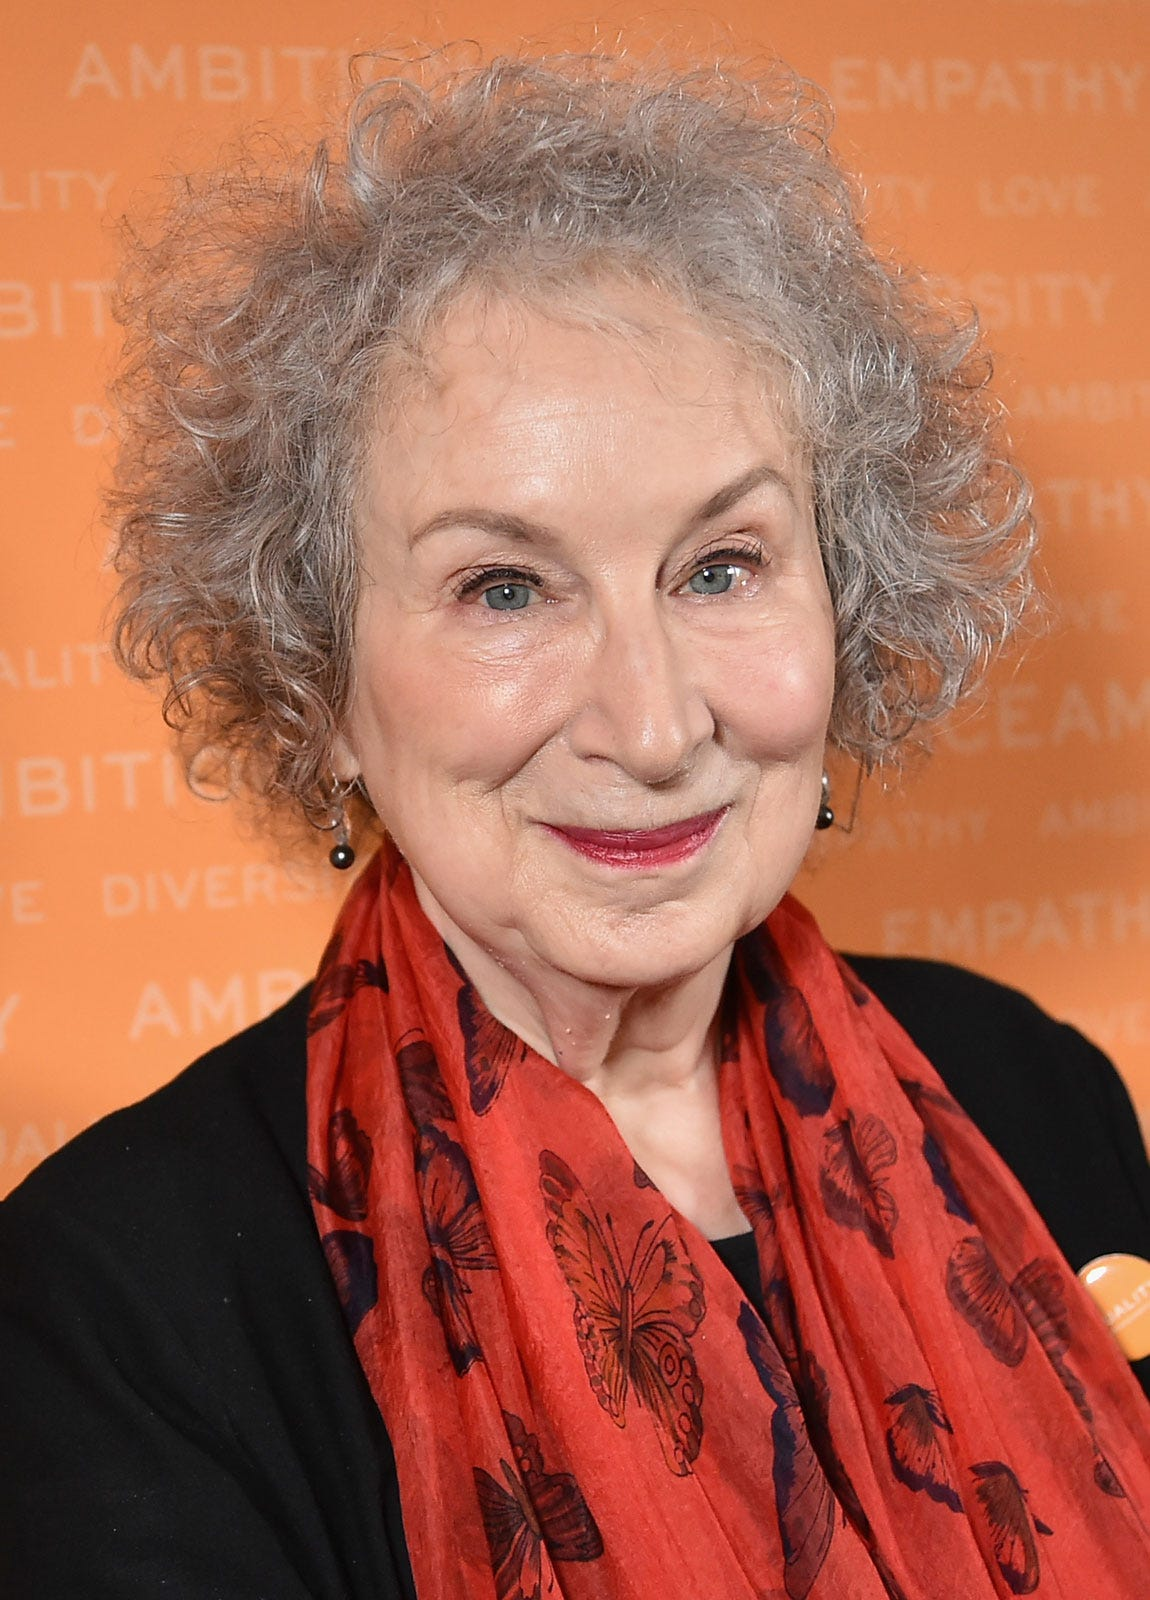 Margaret Atwood | Biography, Books, & Facts | Britannica